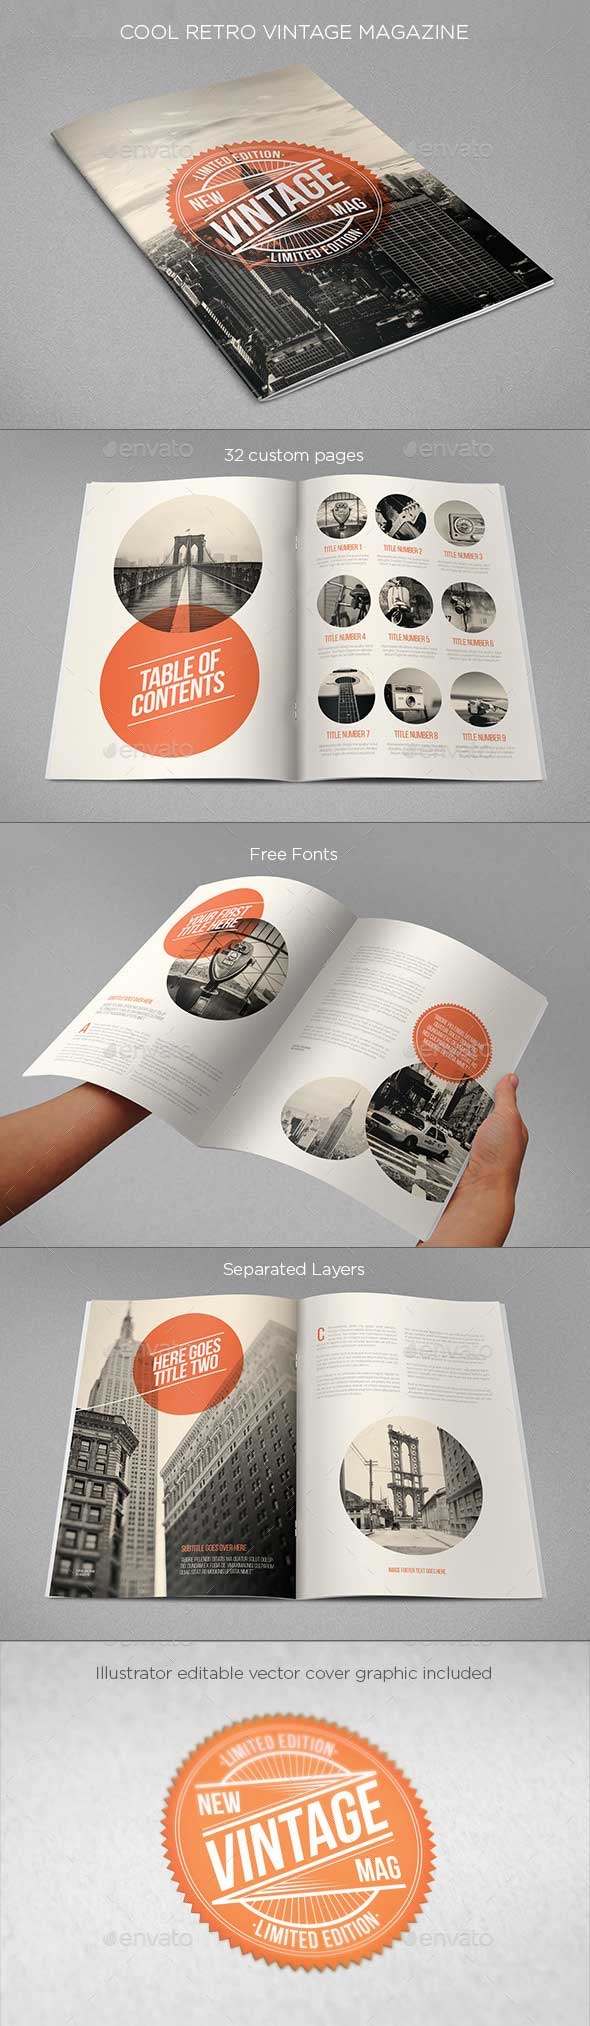 cool-retro-vintage-magazine-template